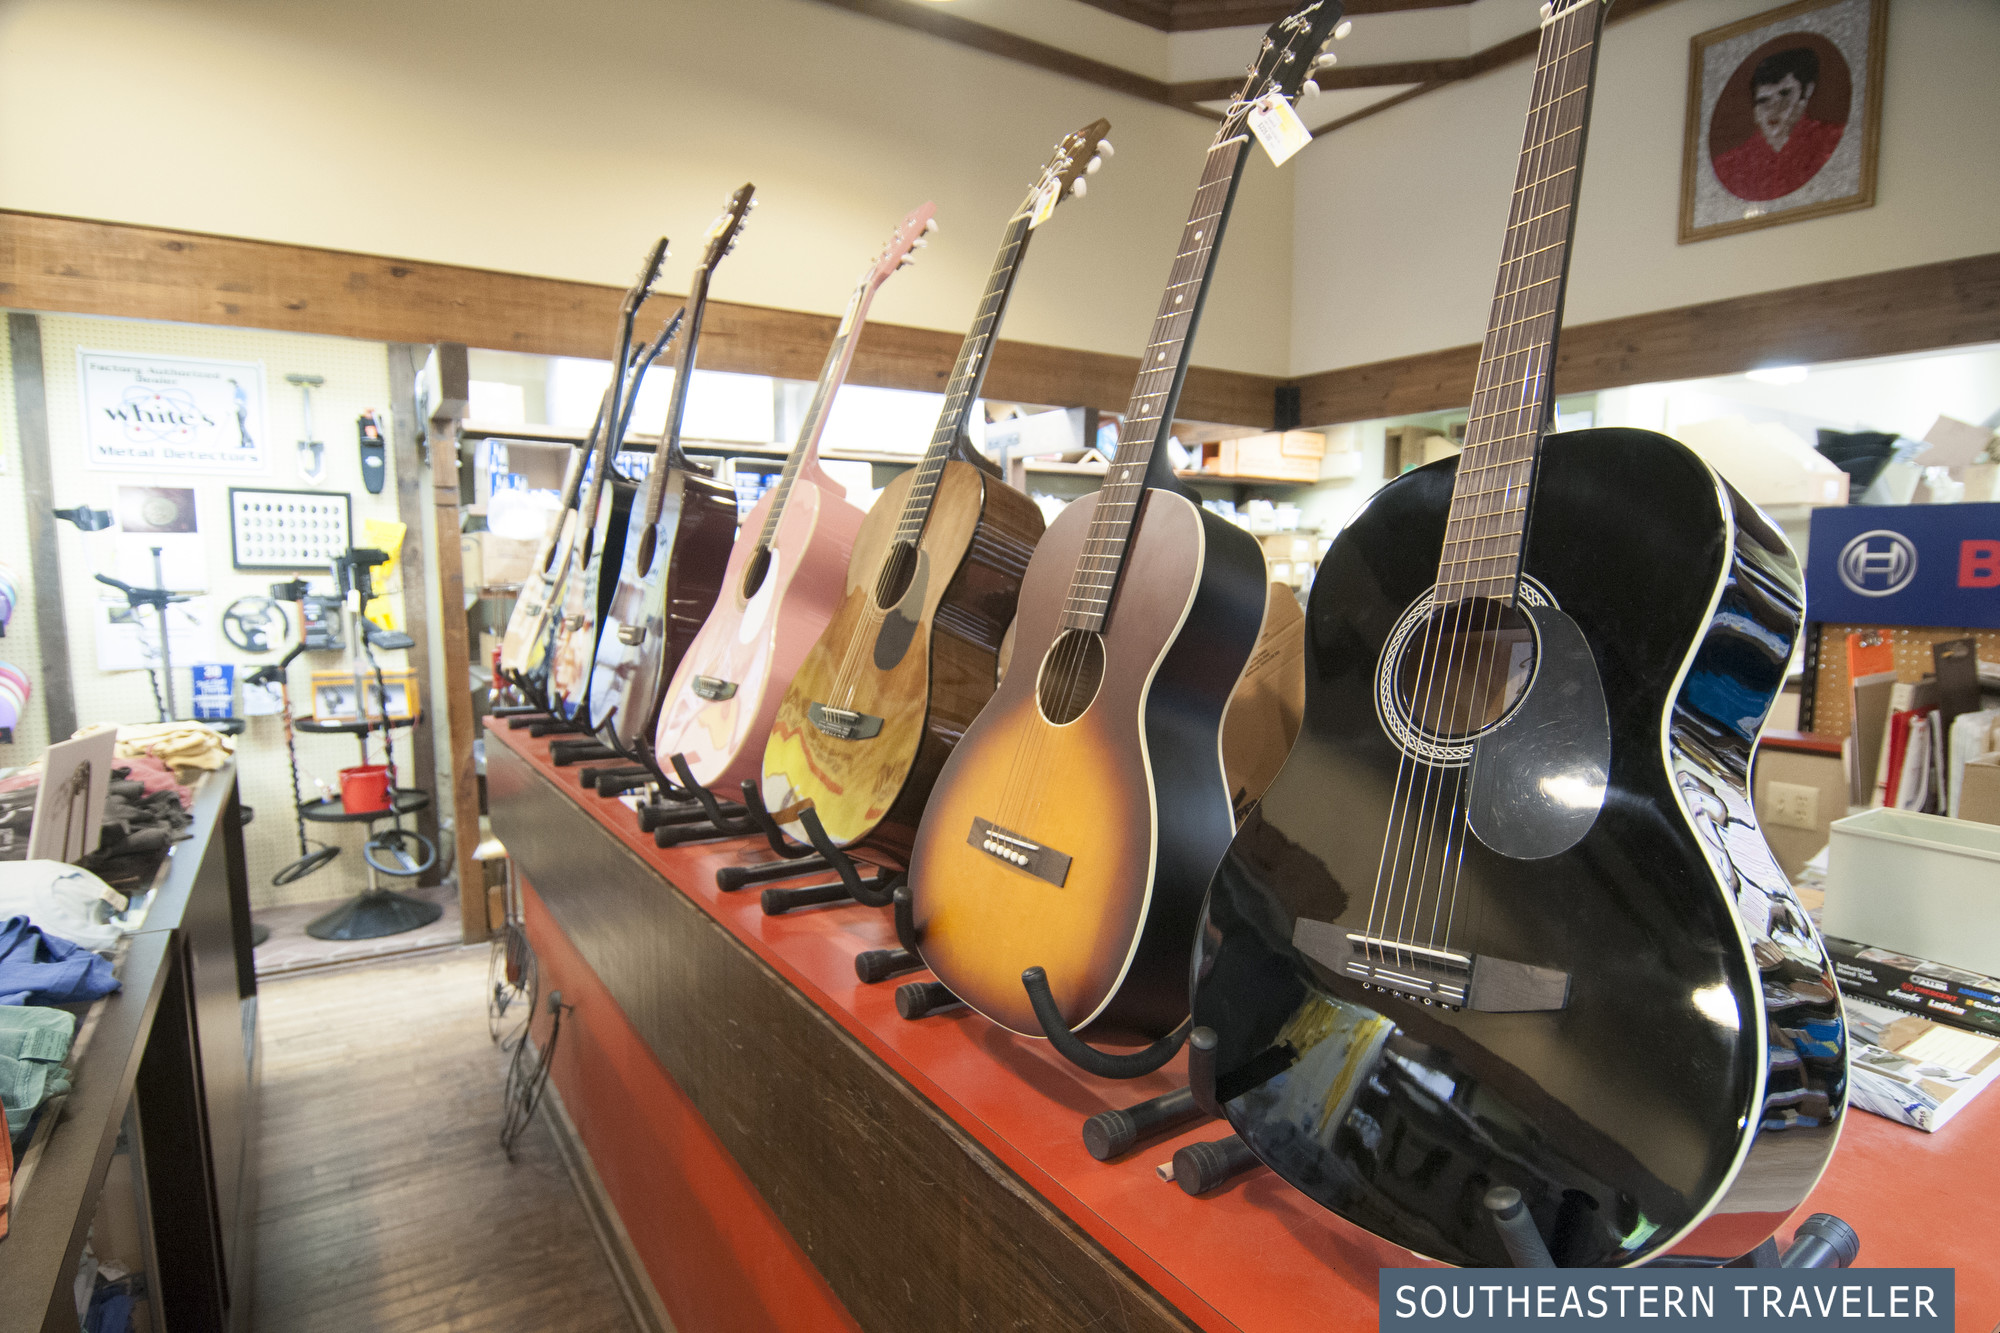 Guitars for sale at Tupelo Hardware Company where Elvis Presley bought his first guitar in Tupelo, Mississippi